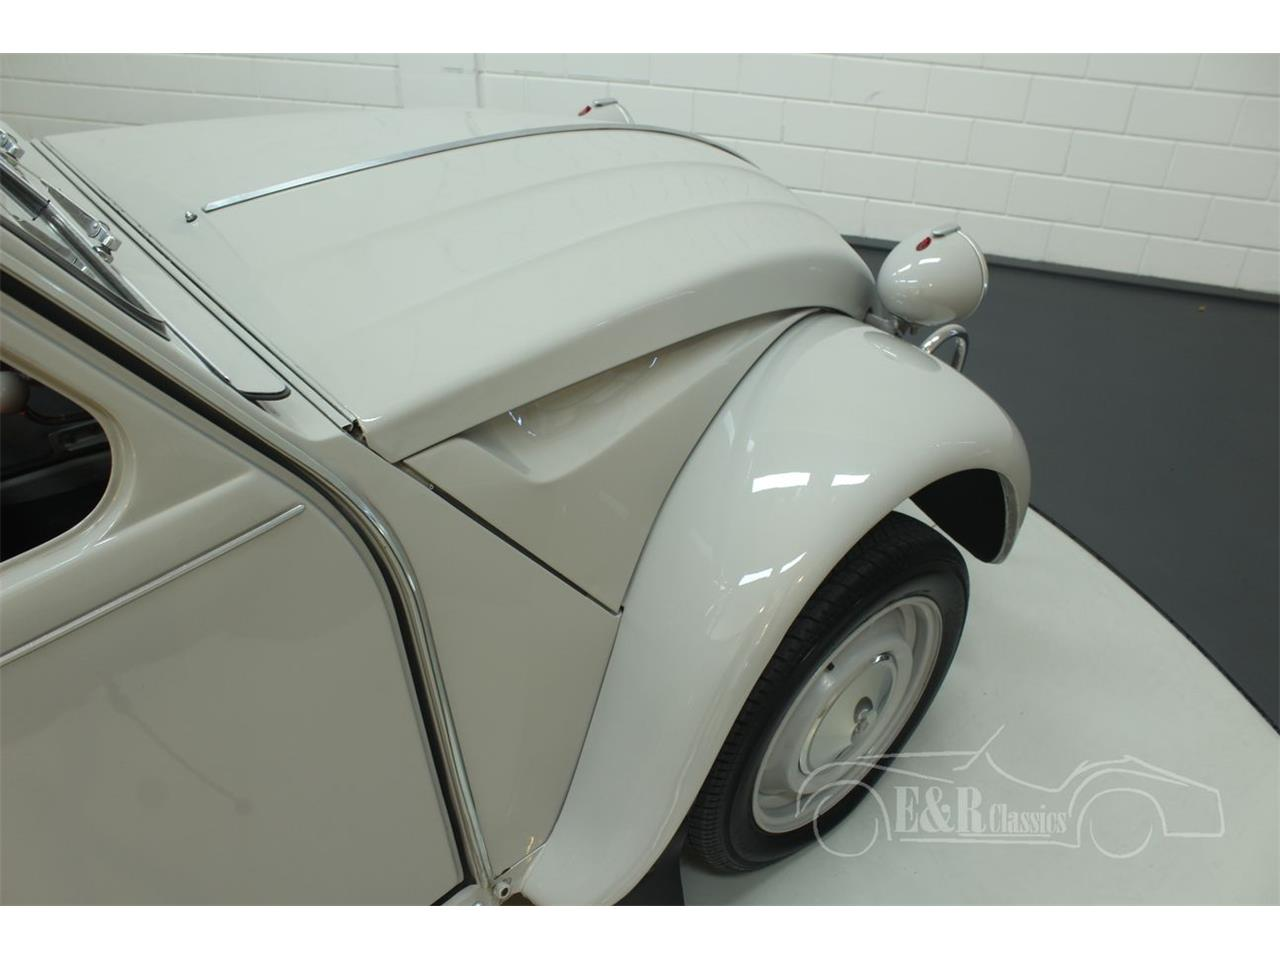 Large Picture of 1966 Citroen 2CV located in - Keine Angabe - - $22,550.00 Offered by E & R Classics - PGSV